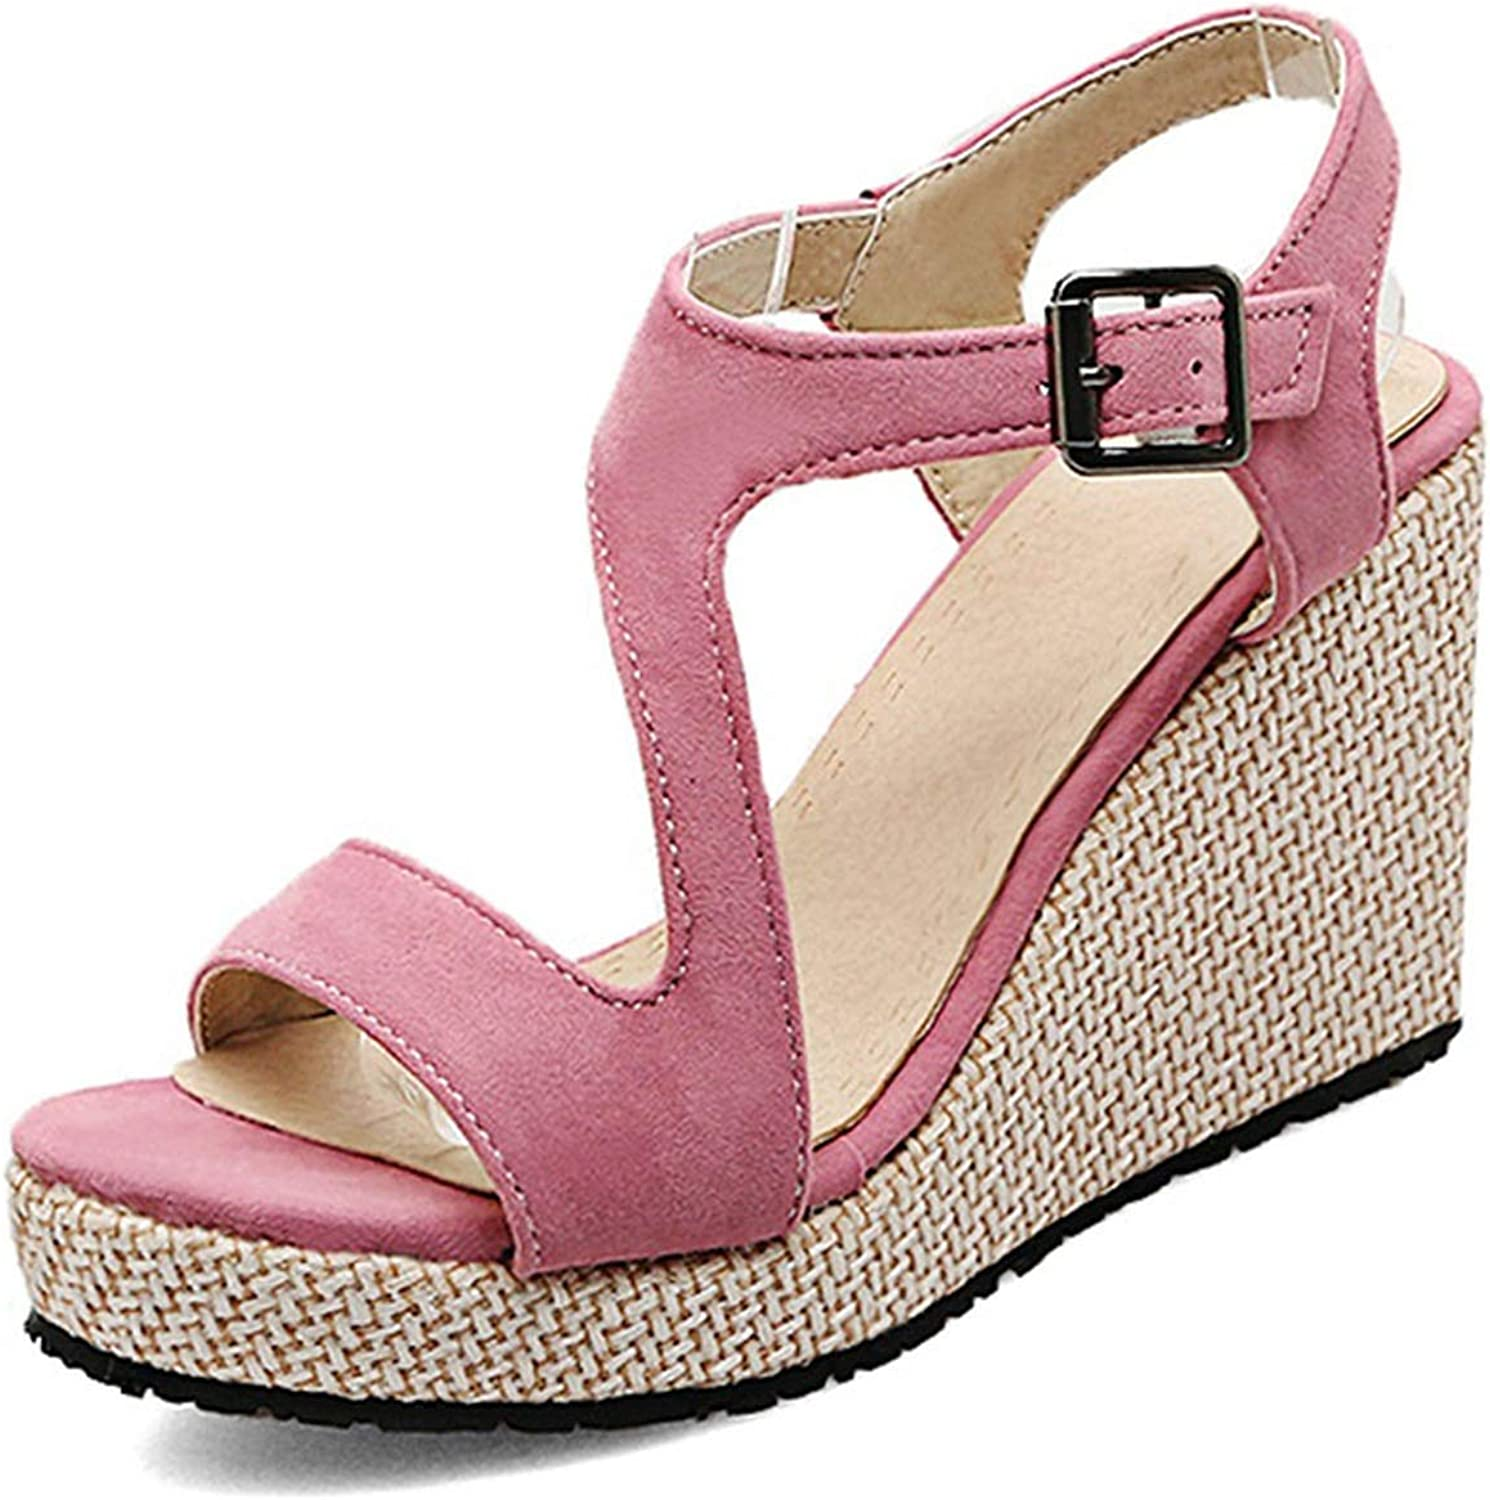 Fairly Wedges Platform Buckle Ladies Summer shoes Classic Fashion shoes Party shoes,Pink,5